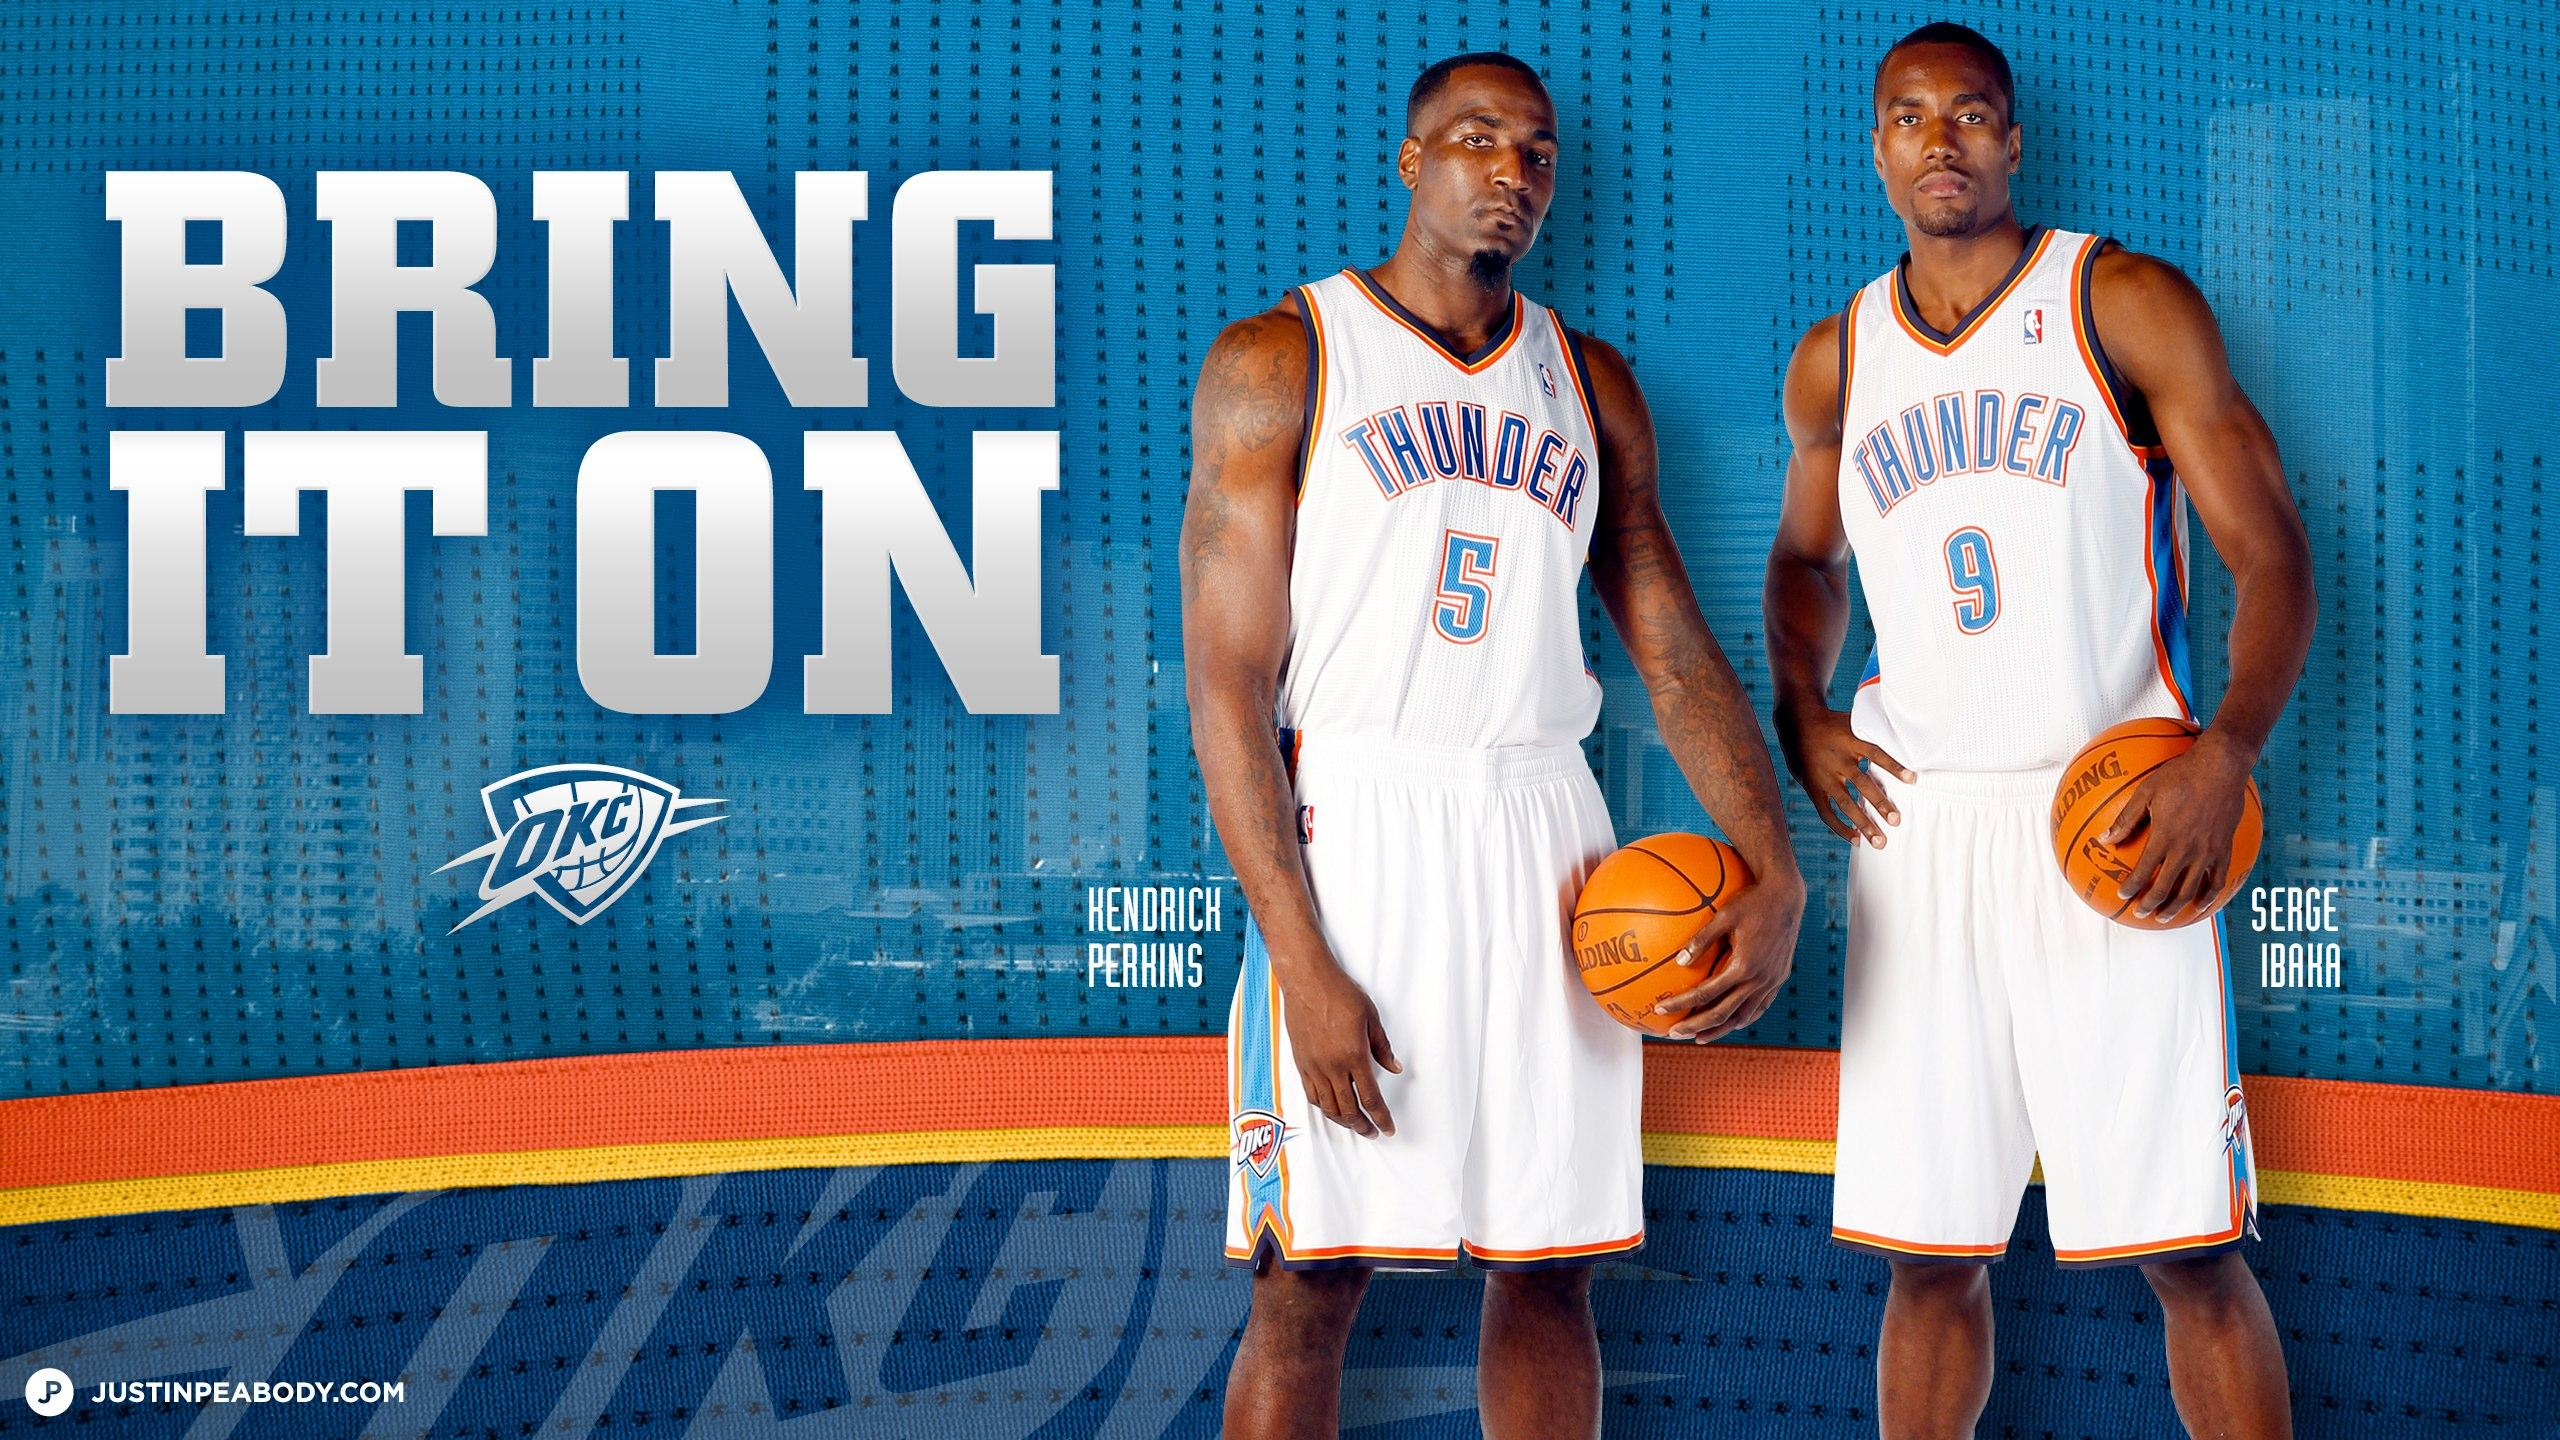 2011-2012 Thunder Wallpapers